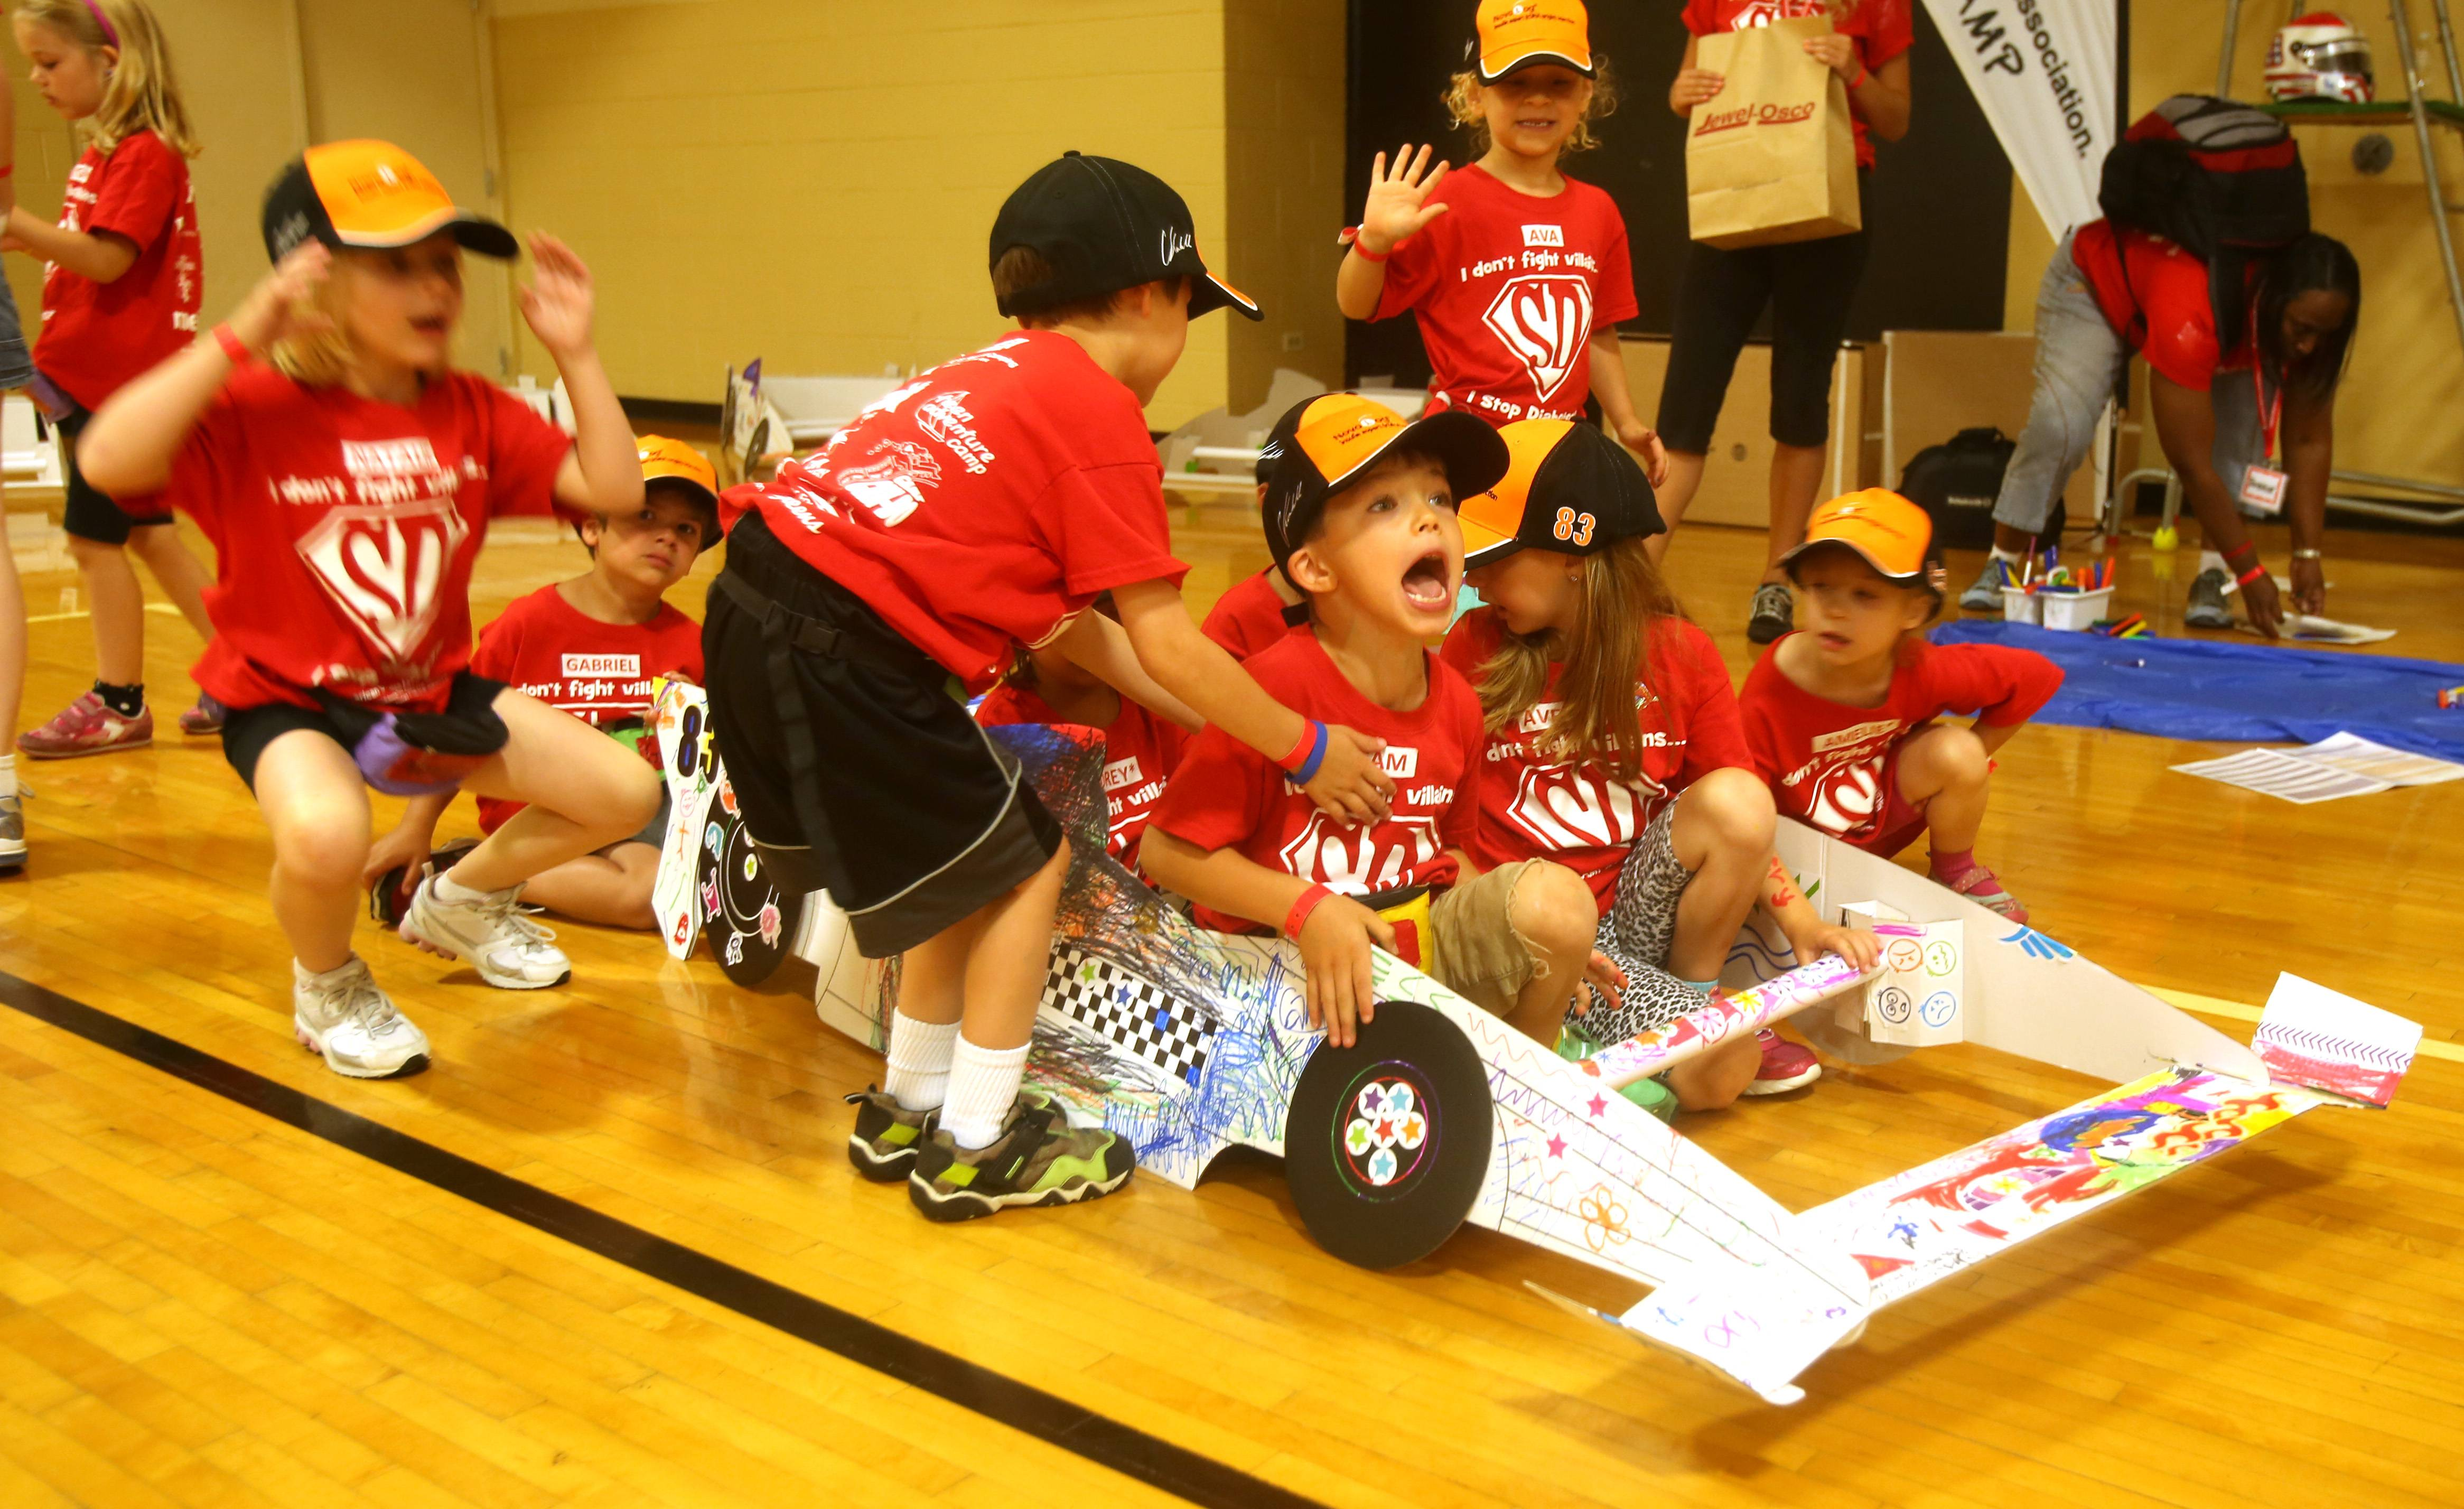 With their decorating work done, the kids try out their Indy car with Sam Modjeski yelling for the car to move.